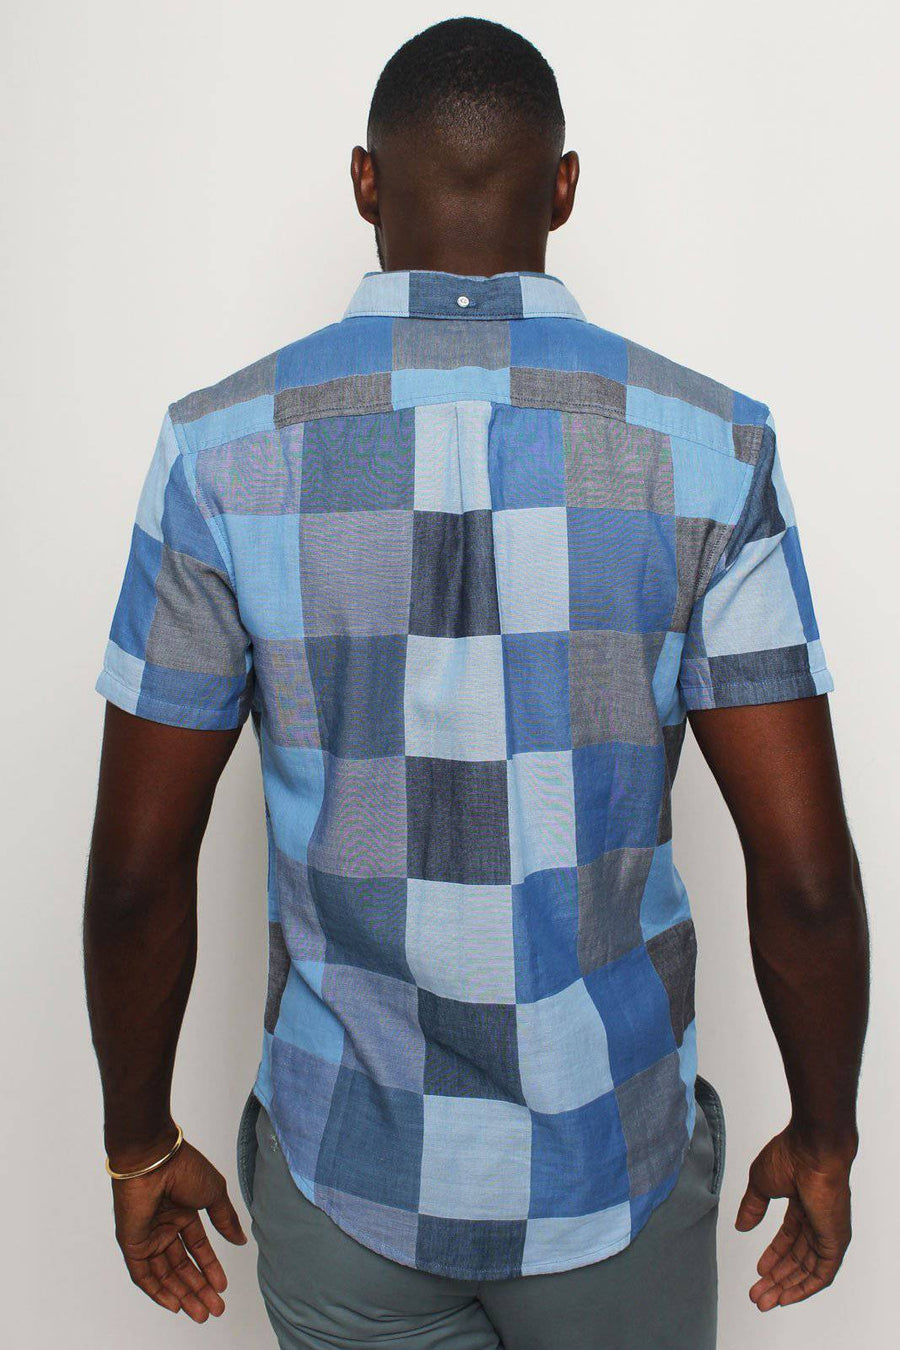 Blue Domino Shirt - South of London